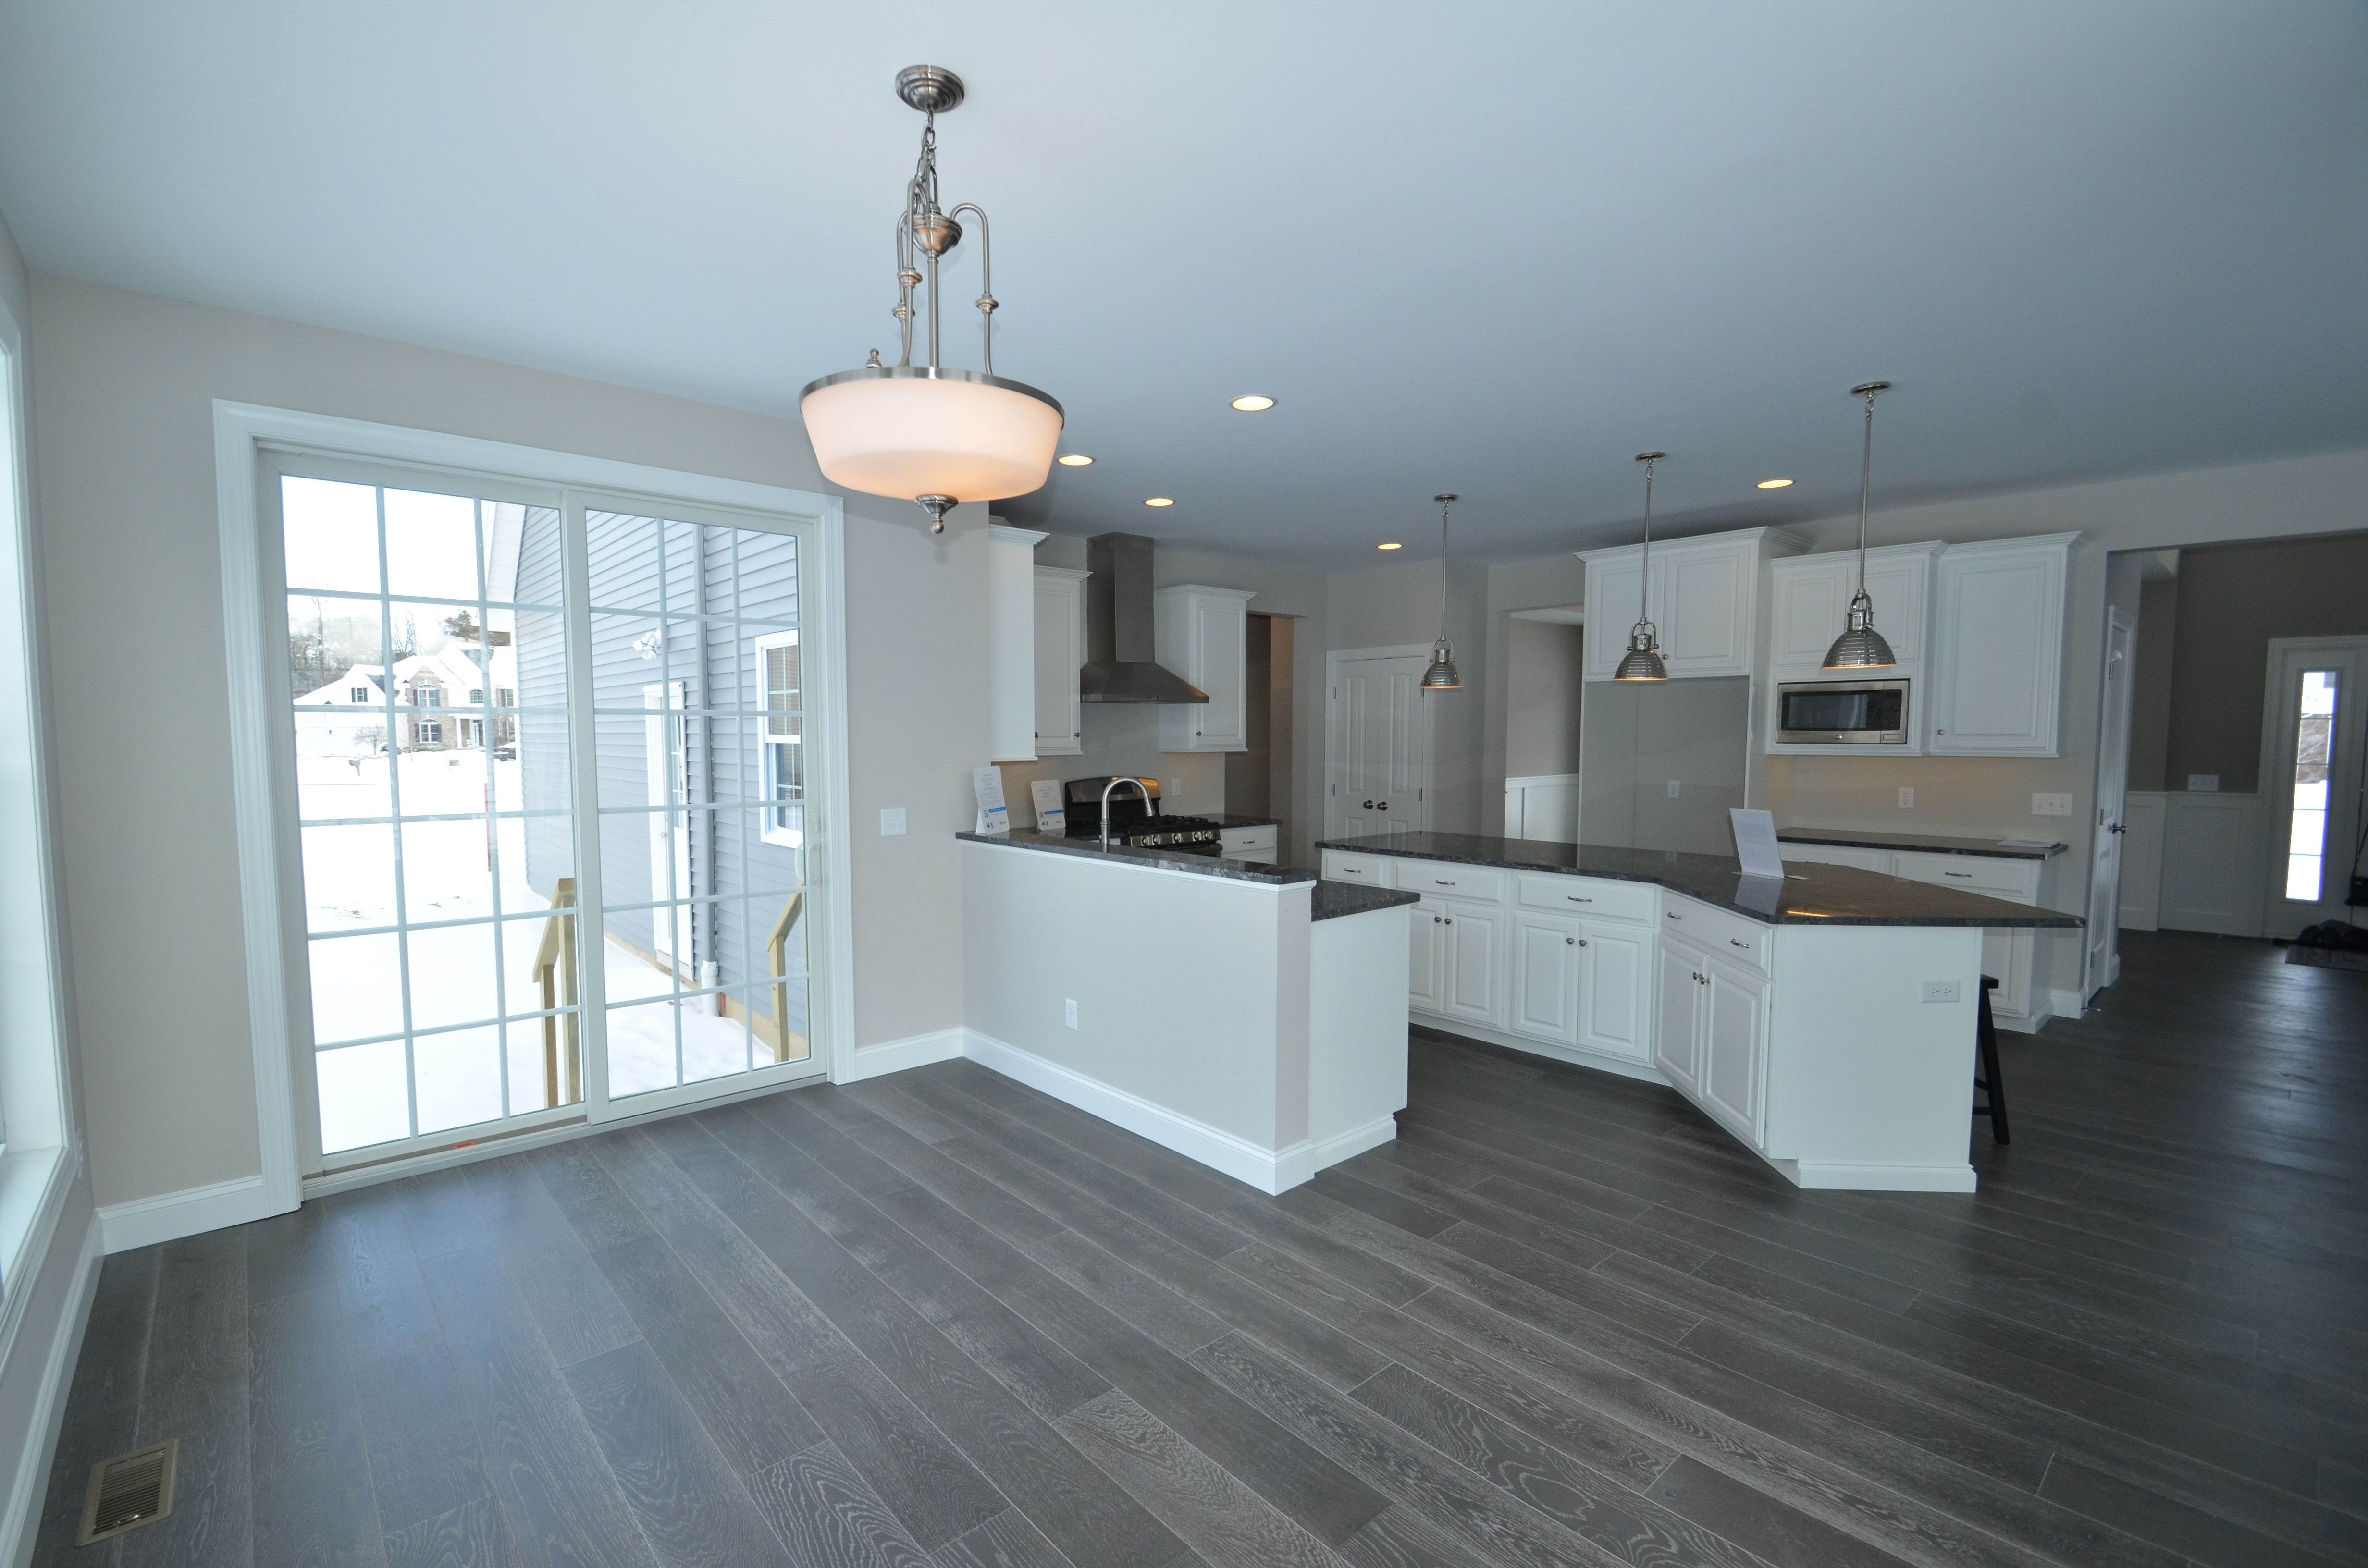 Ventura Hardwood Floors Collection with our NuOil Finish | French ...